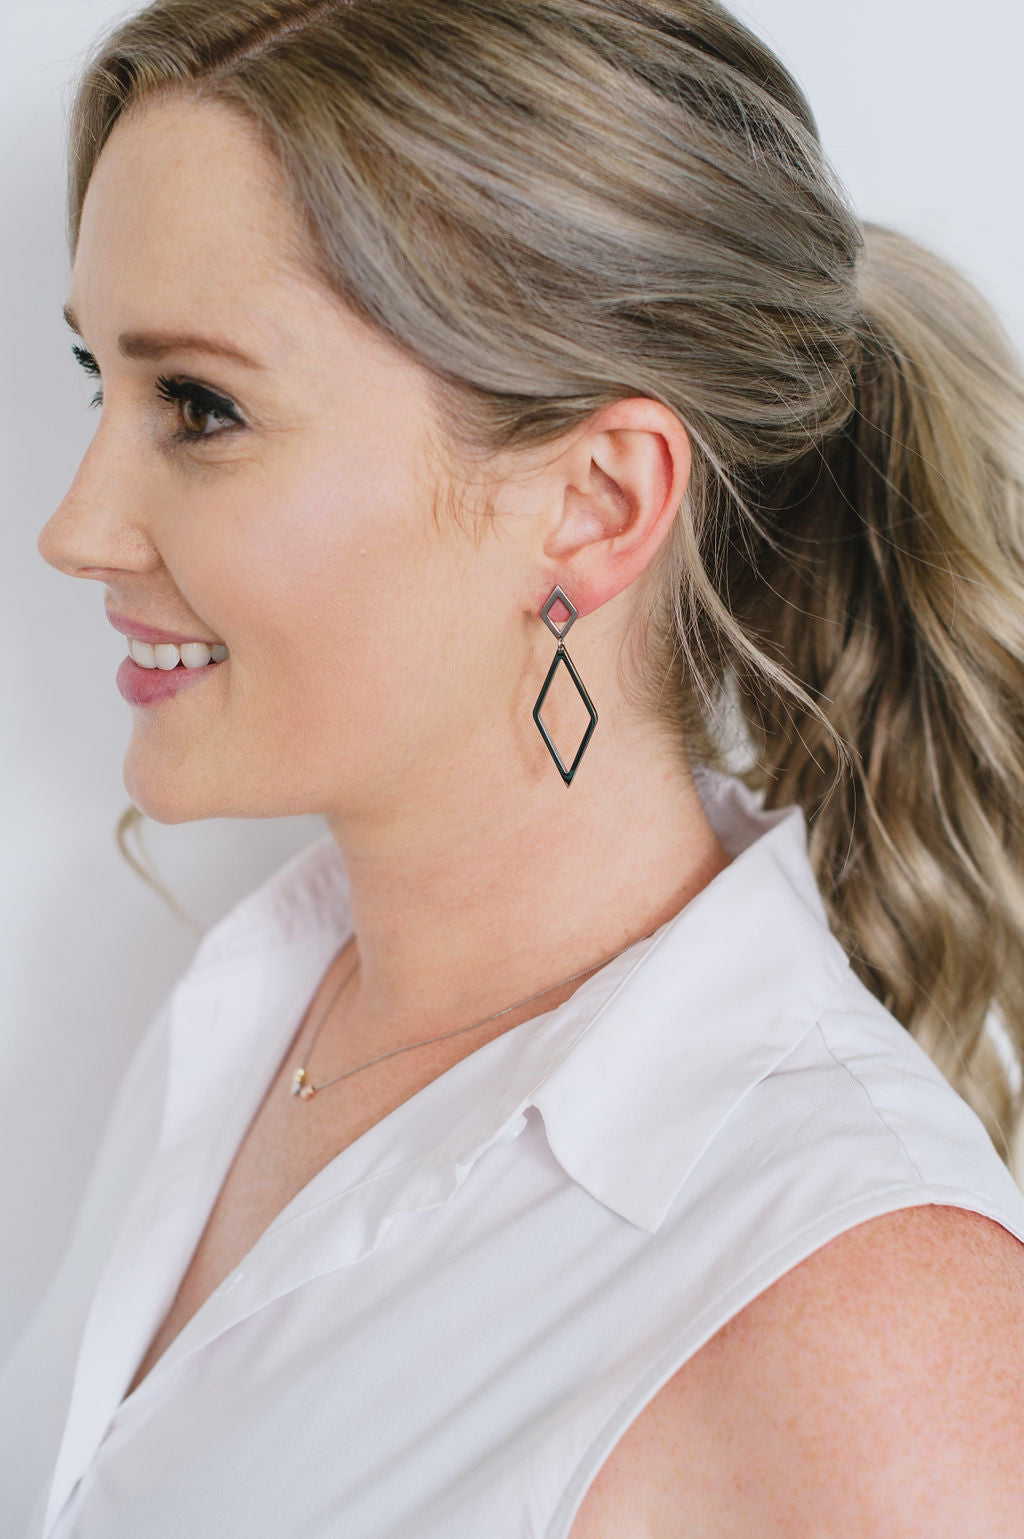 Beck & Boosh Therese Earrings Small Diamond Stud With Larger Diamond Dangling Below Plated Silver Stainless Steel On Model